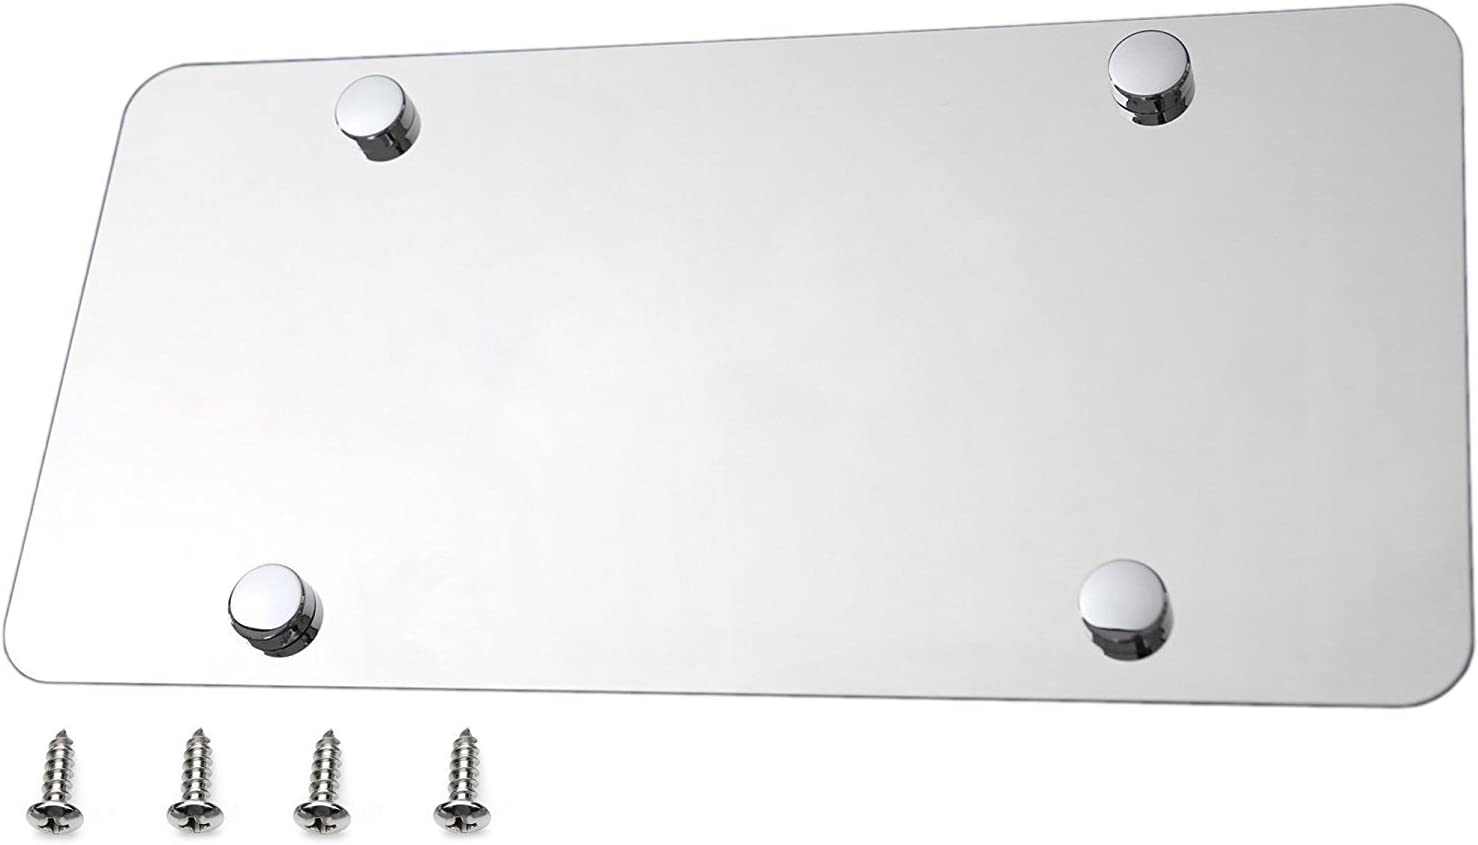 Plain Blank Stainless Steel License Plate Polished Mirror